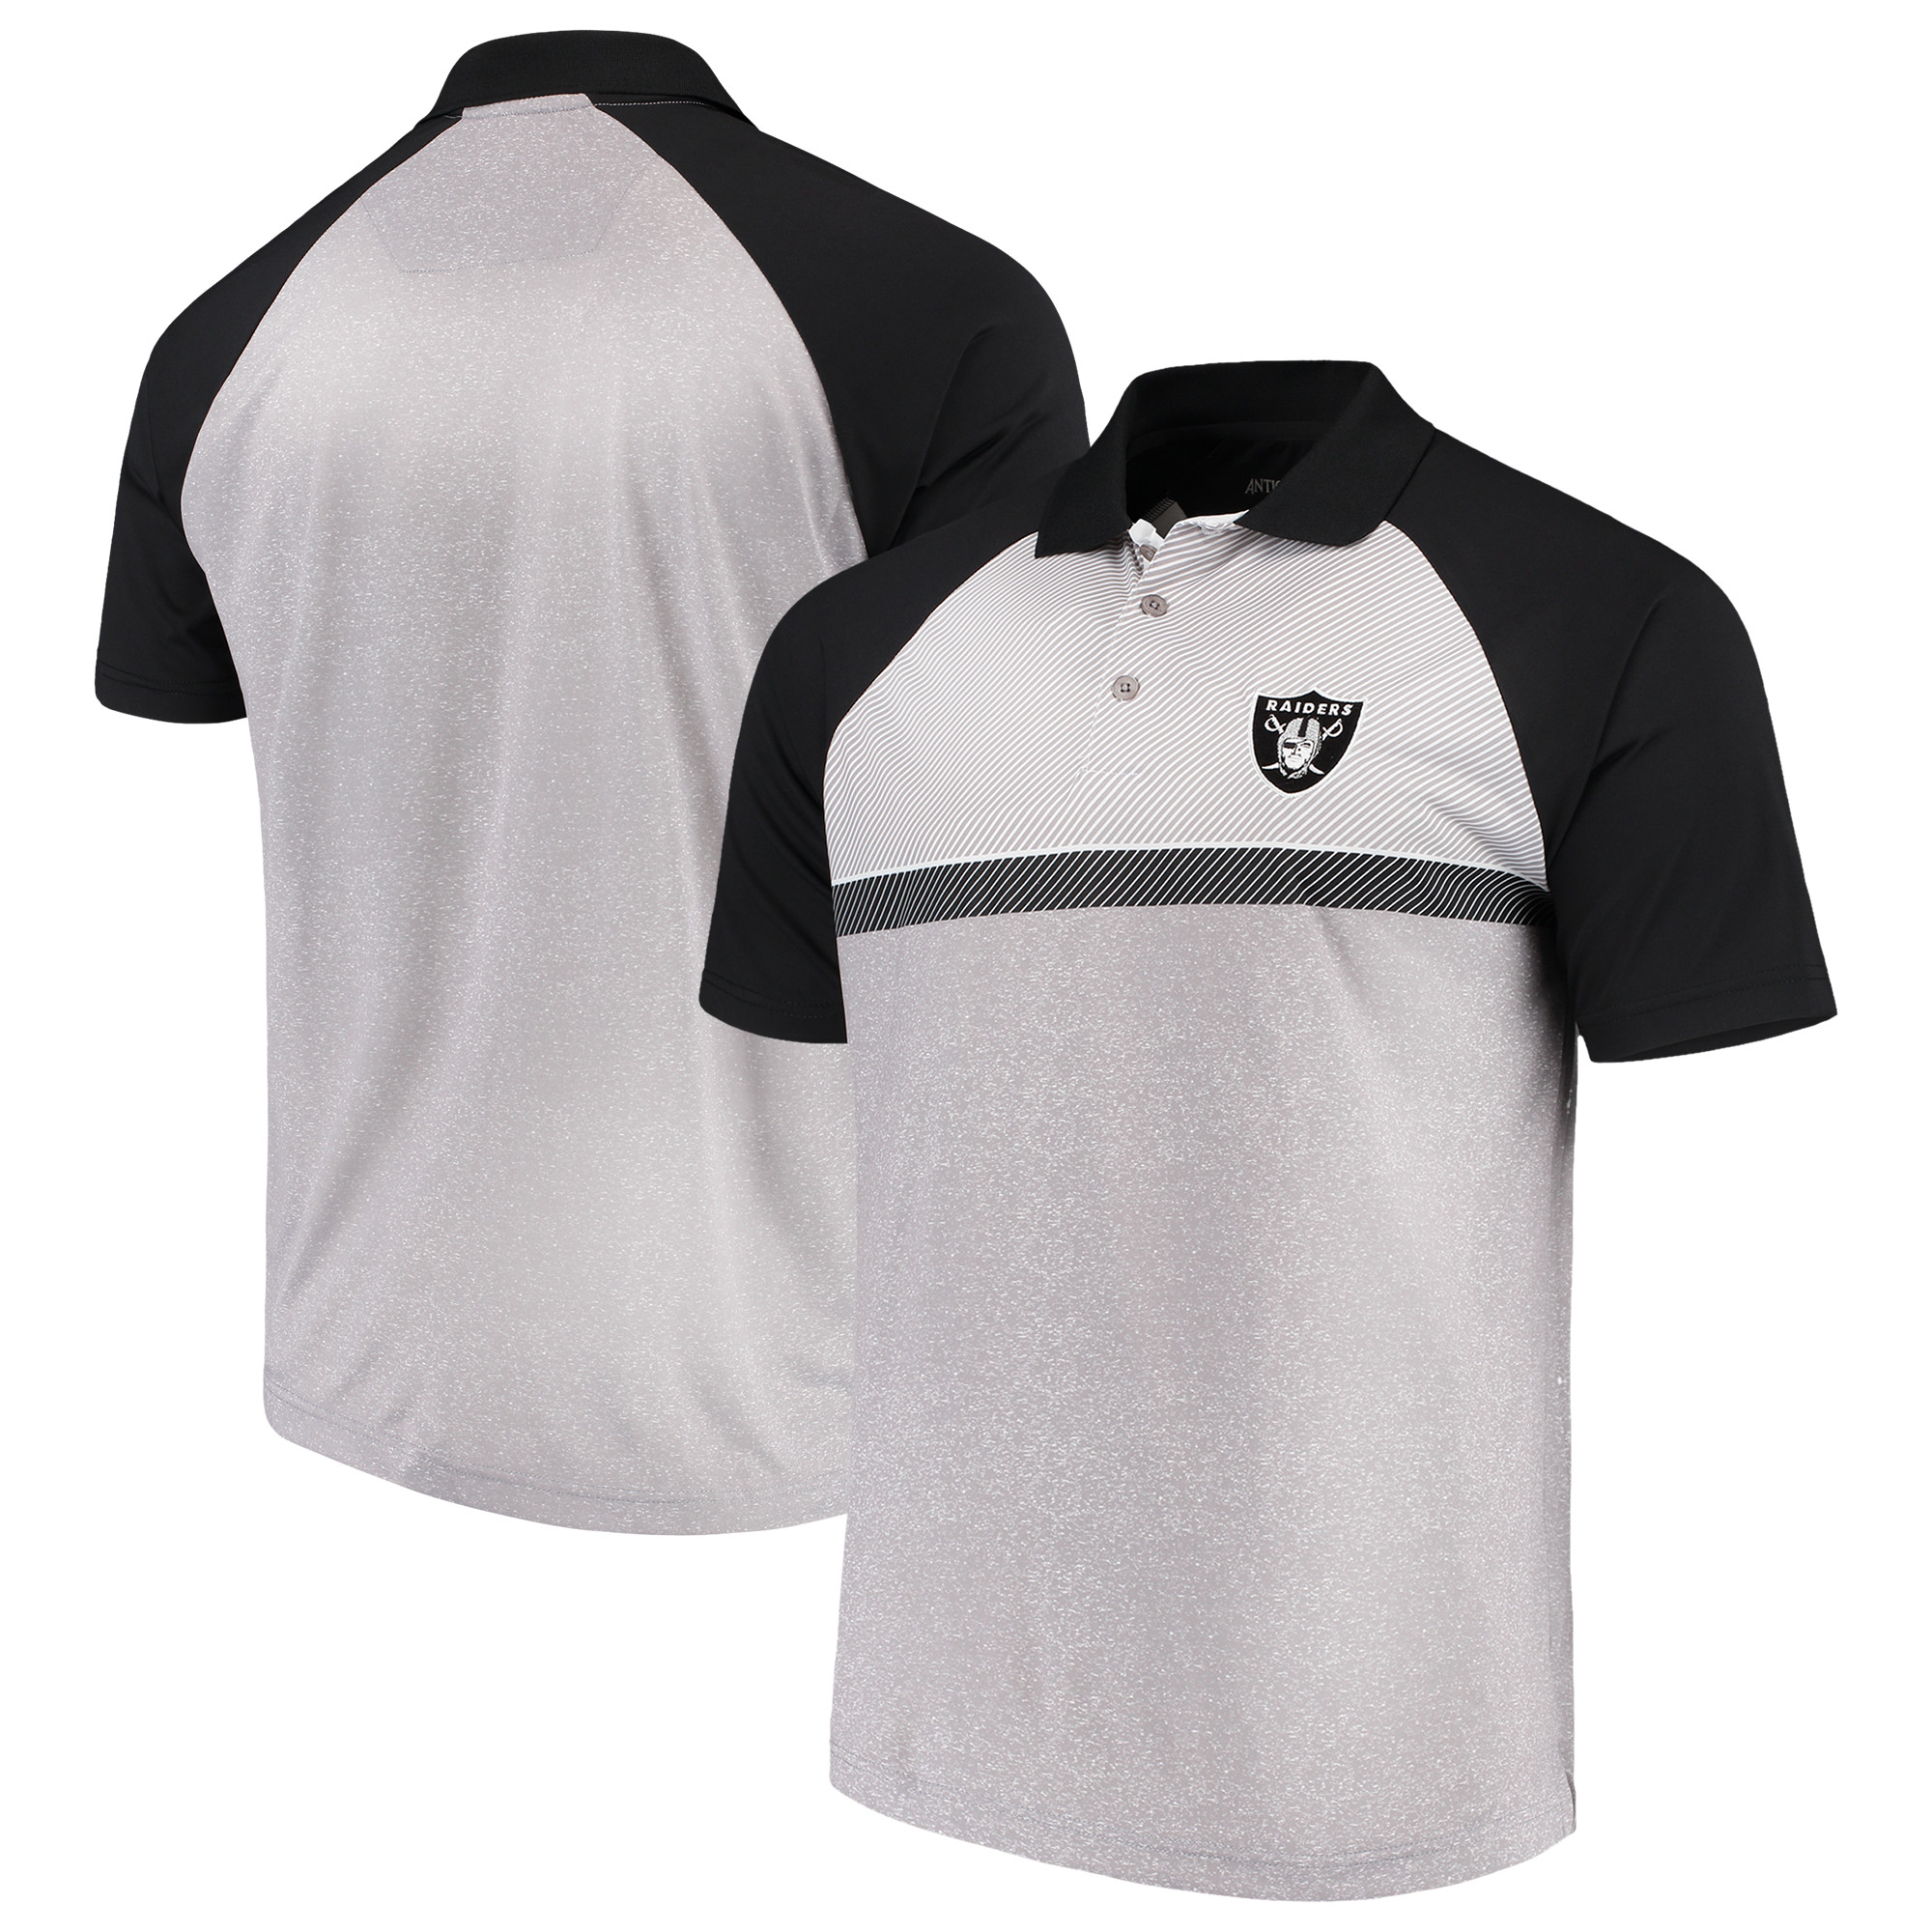 Oakland Raiders Antigua Momentum Polo - Gray/Black